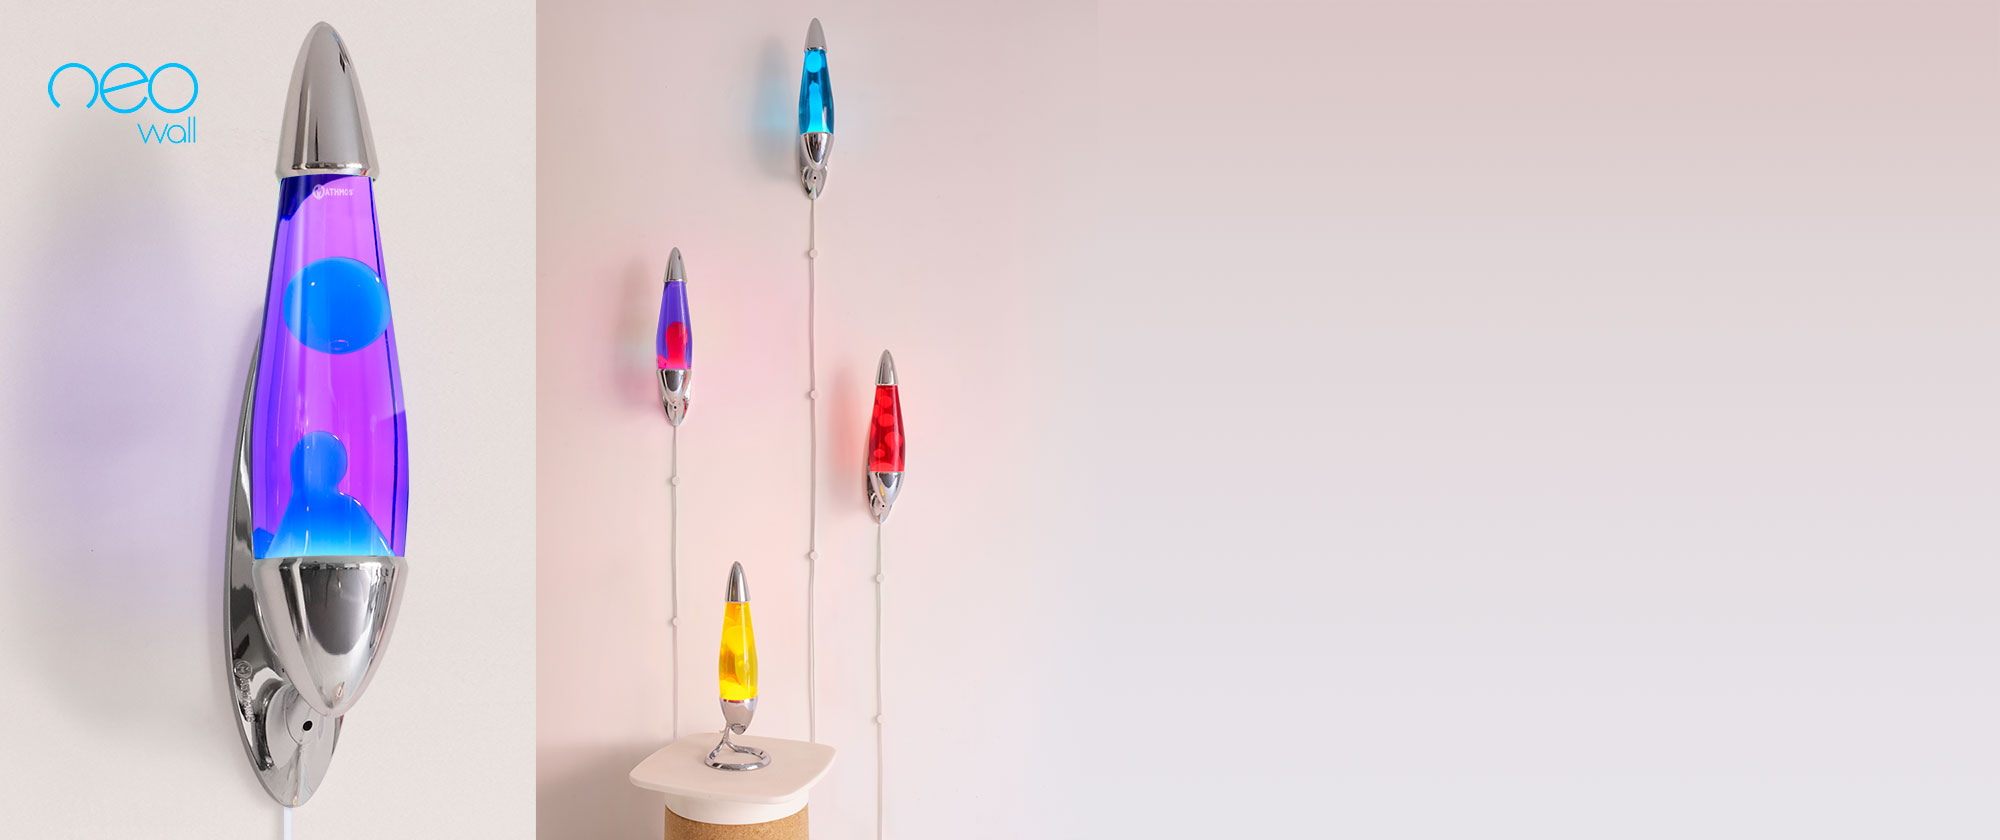 Neo Lavalamp Wall